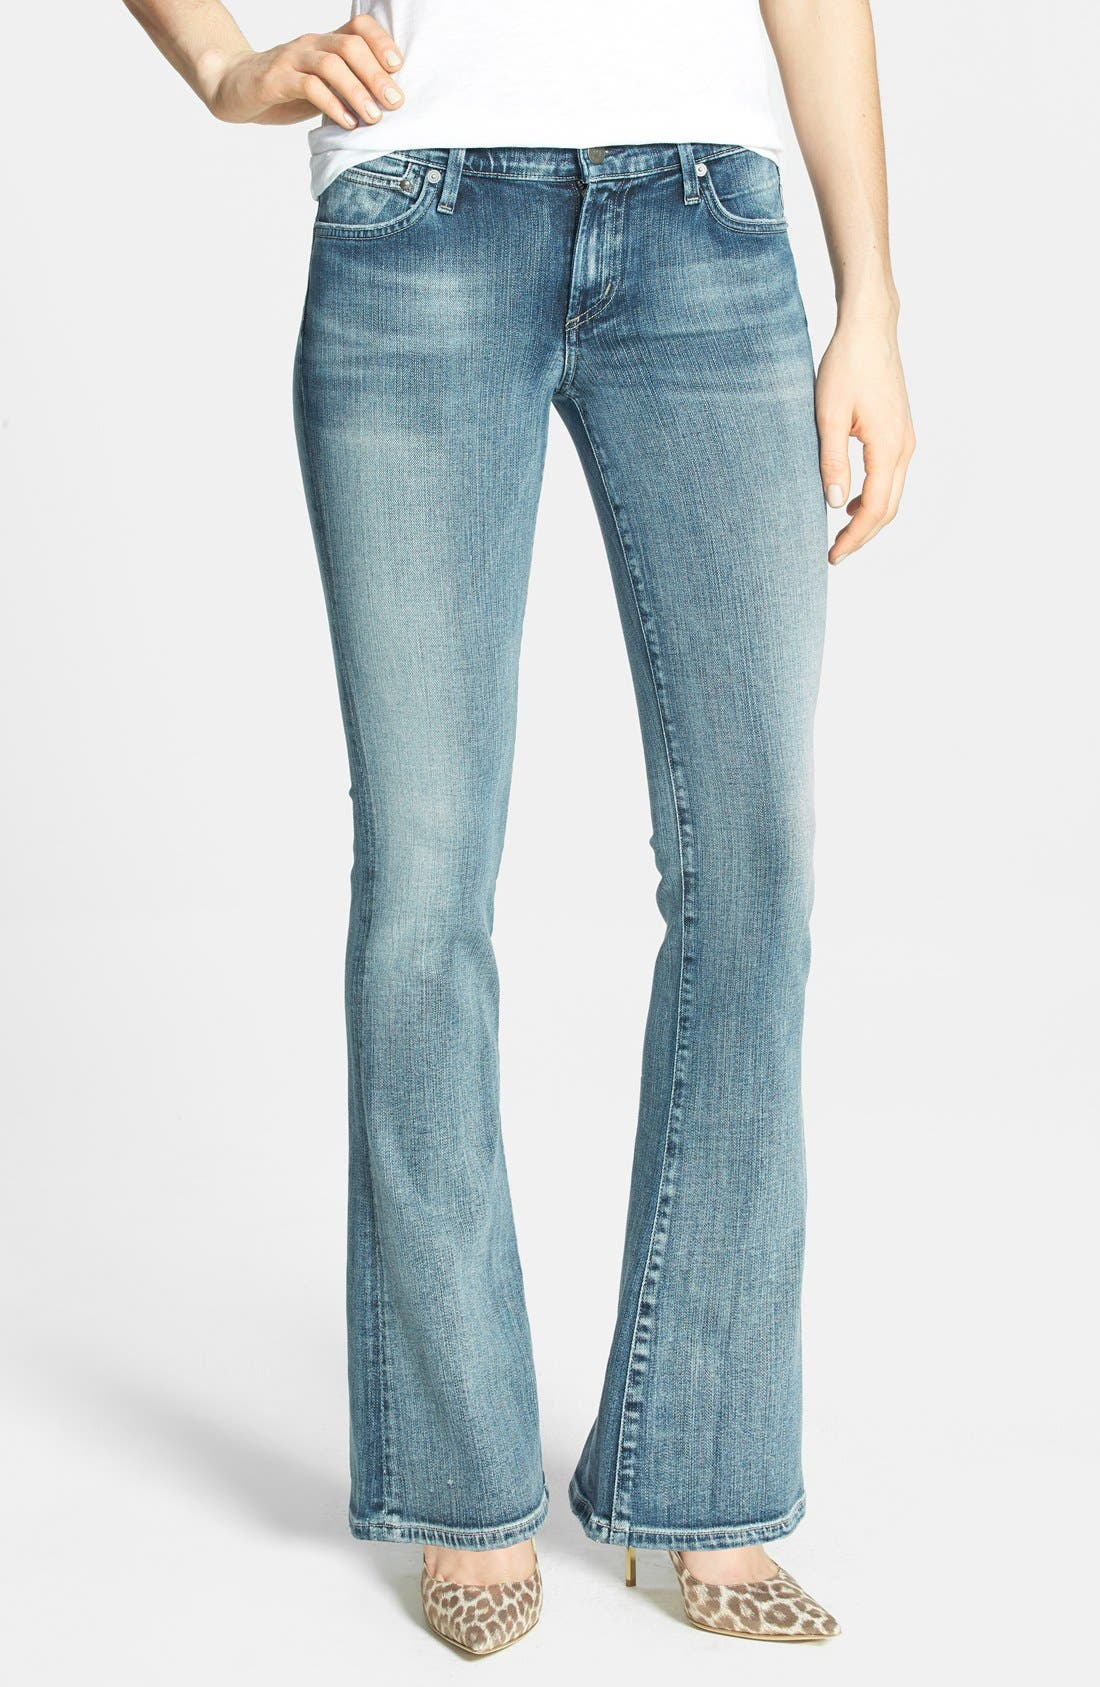 Alternate Image 1 Selected - Citizens of Humanity 'Emannuelle' Slim Bootcut Jeans (Gaze) (Petite)